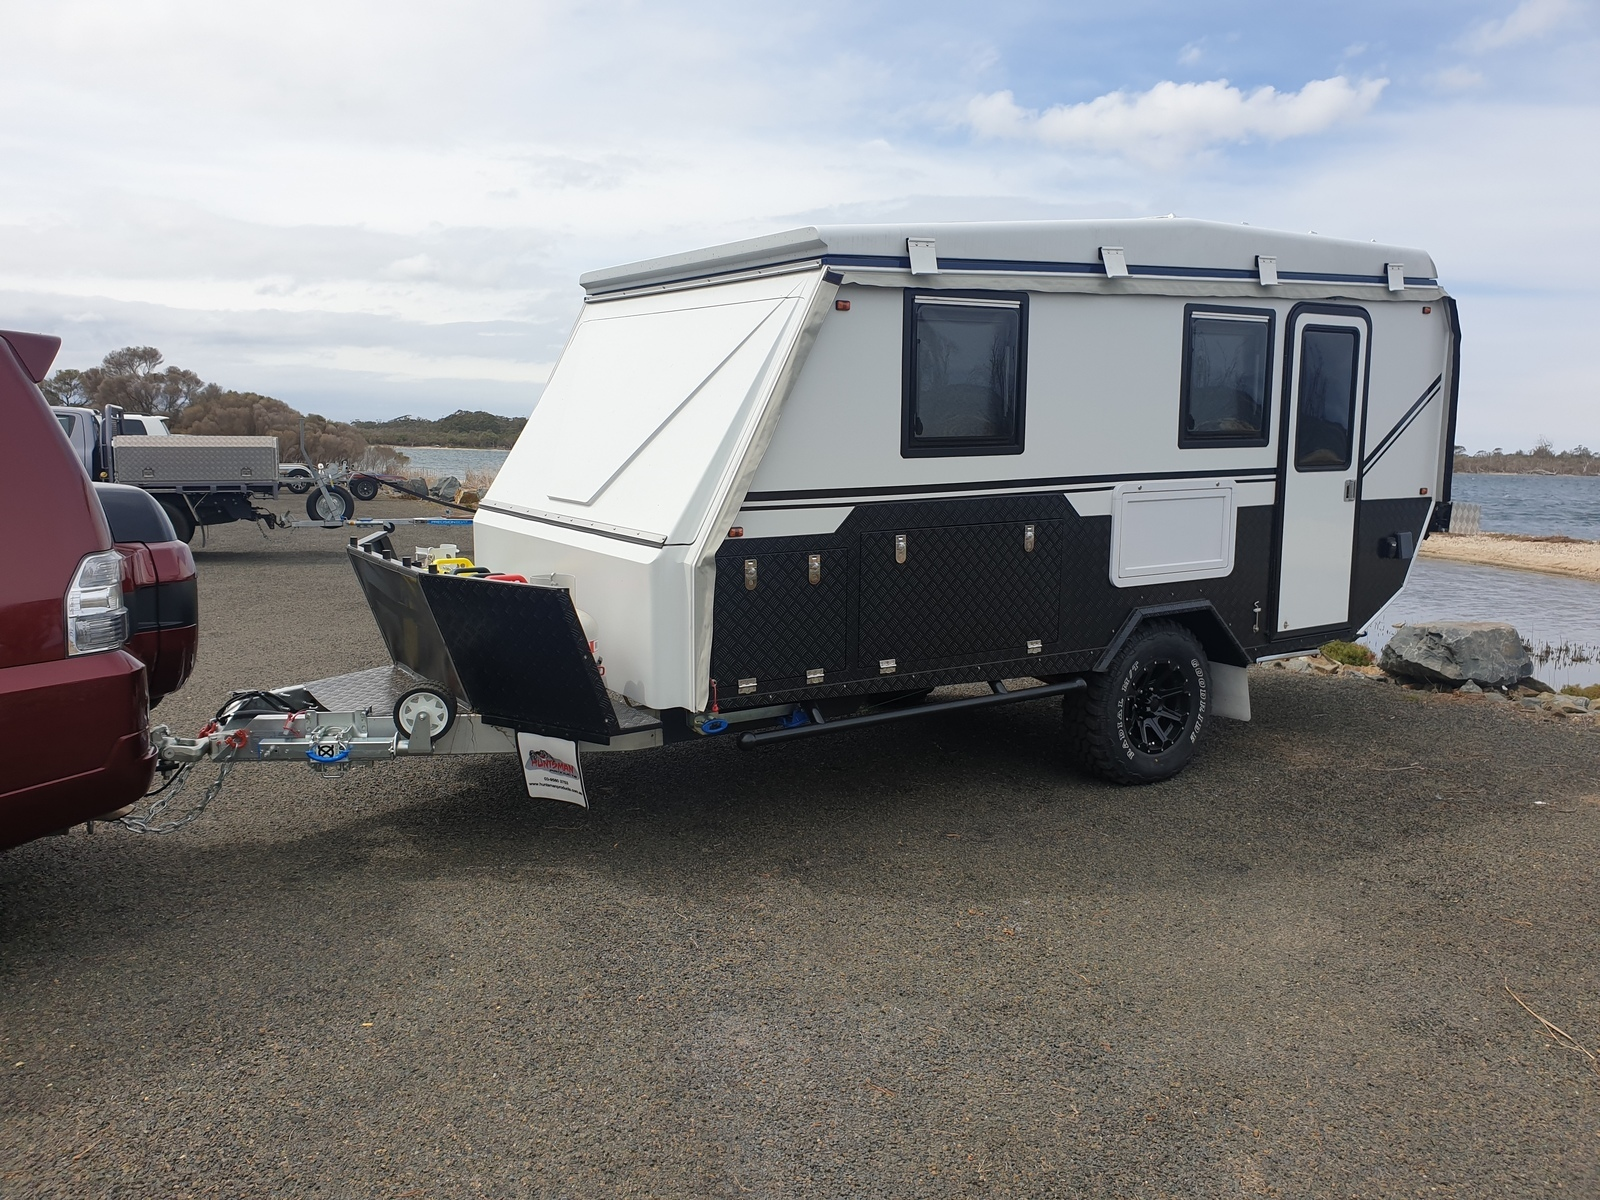 Expander For Hire In Hallam Vic From 100 0 2019 Parkes Gt Hybrid 15ft 5 7 Berth Camplify